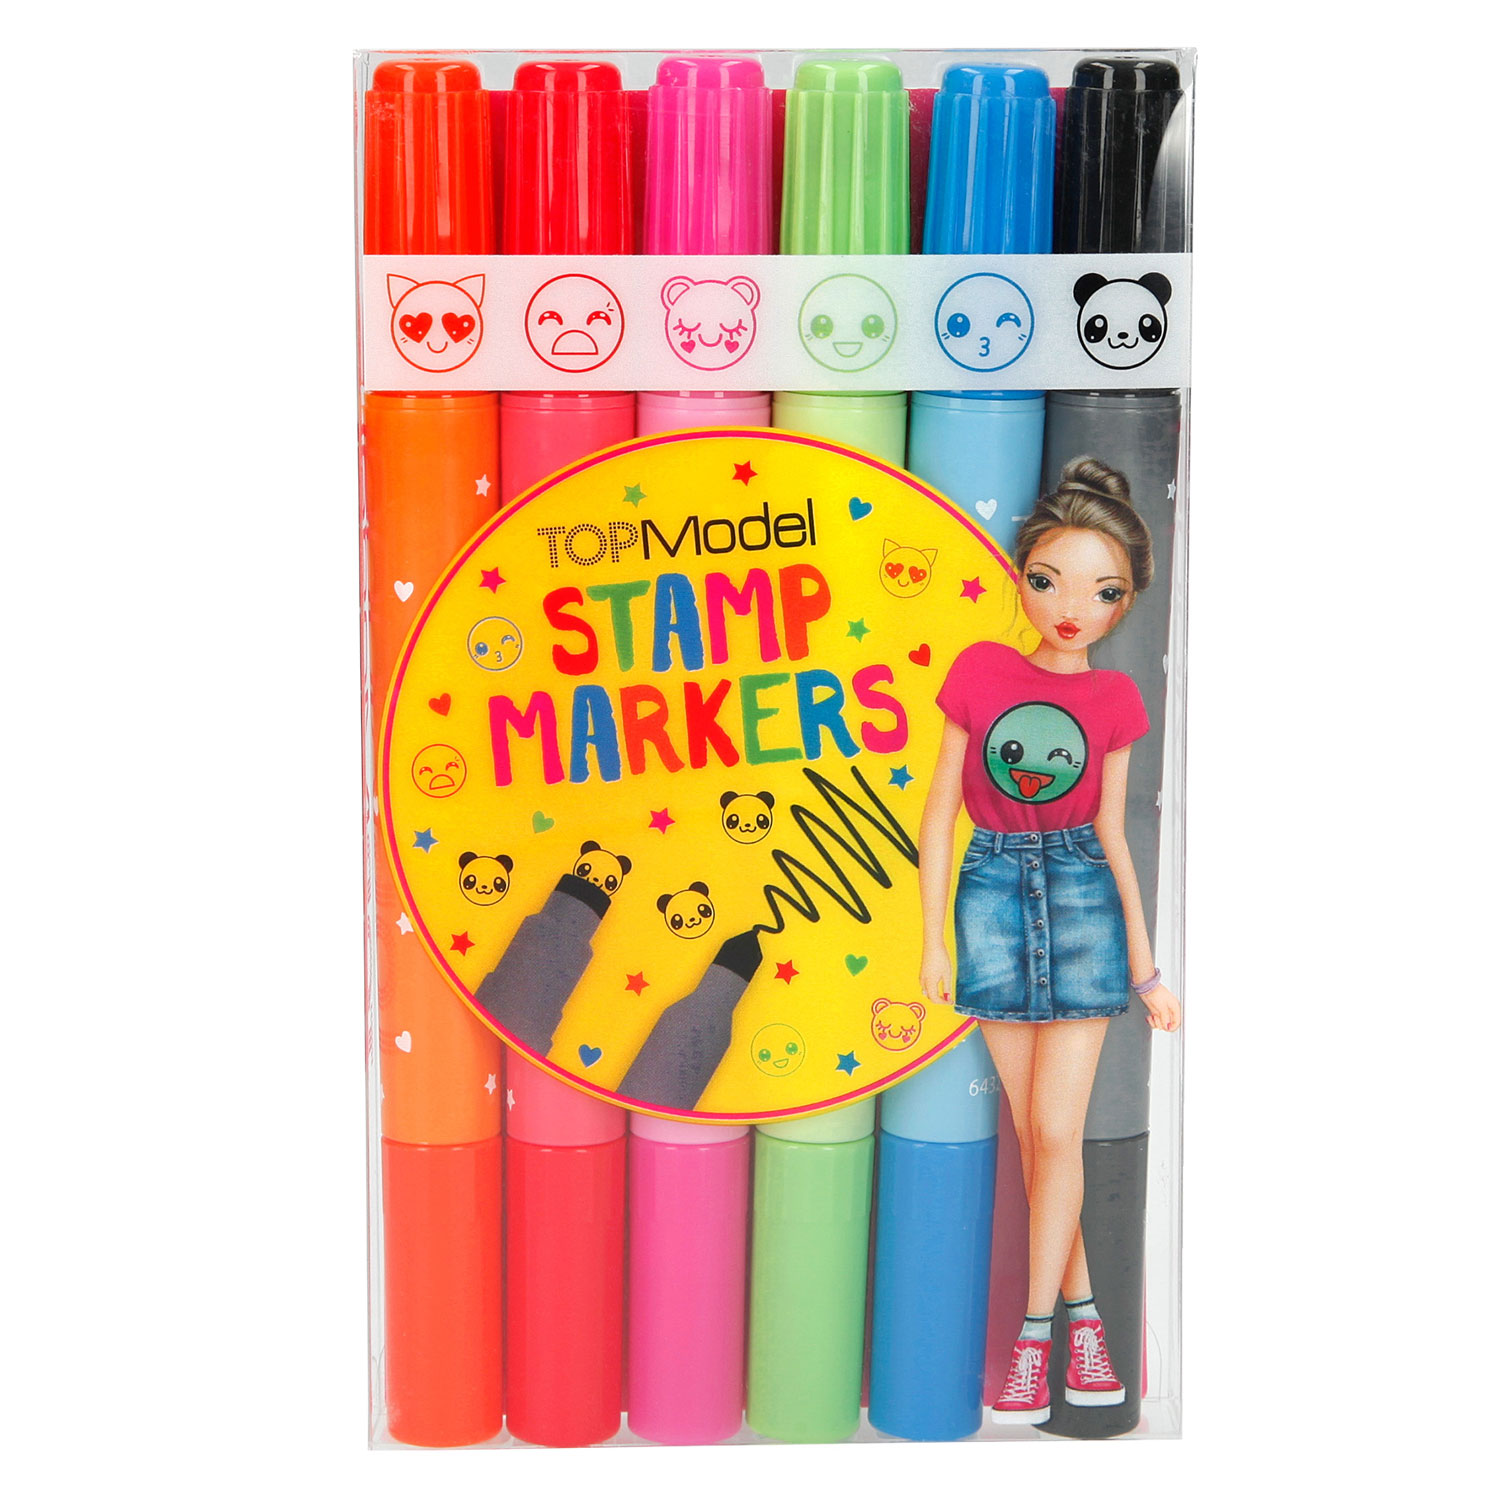 Topmodell Stamp Markers